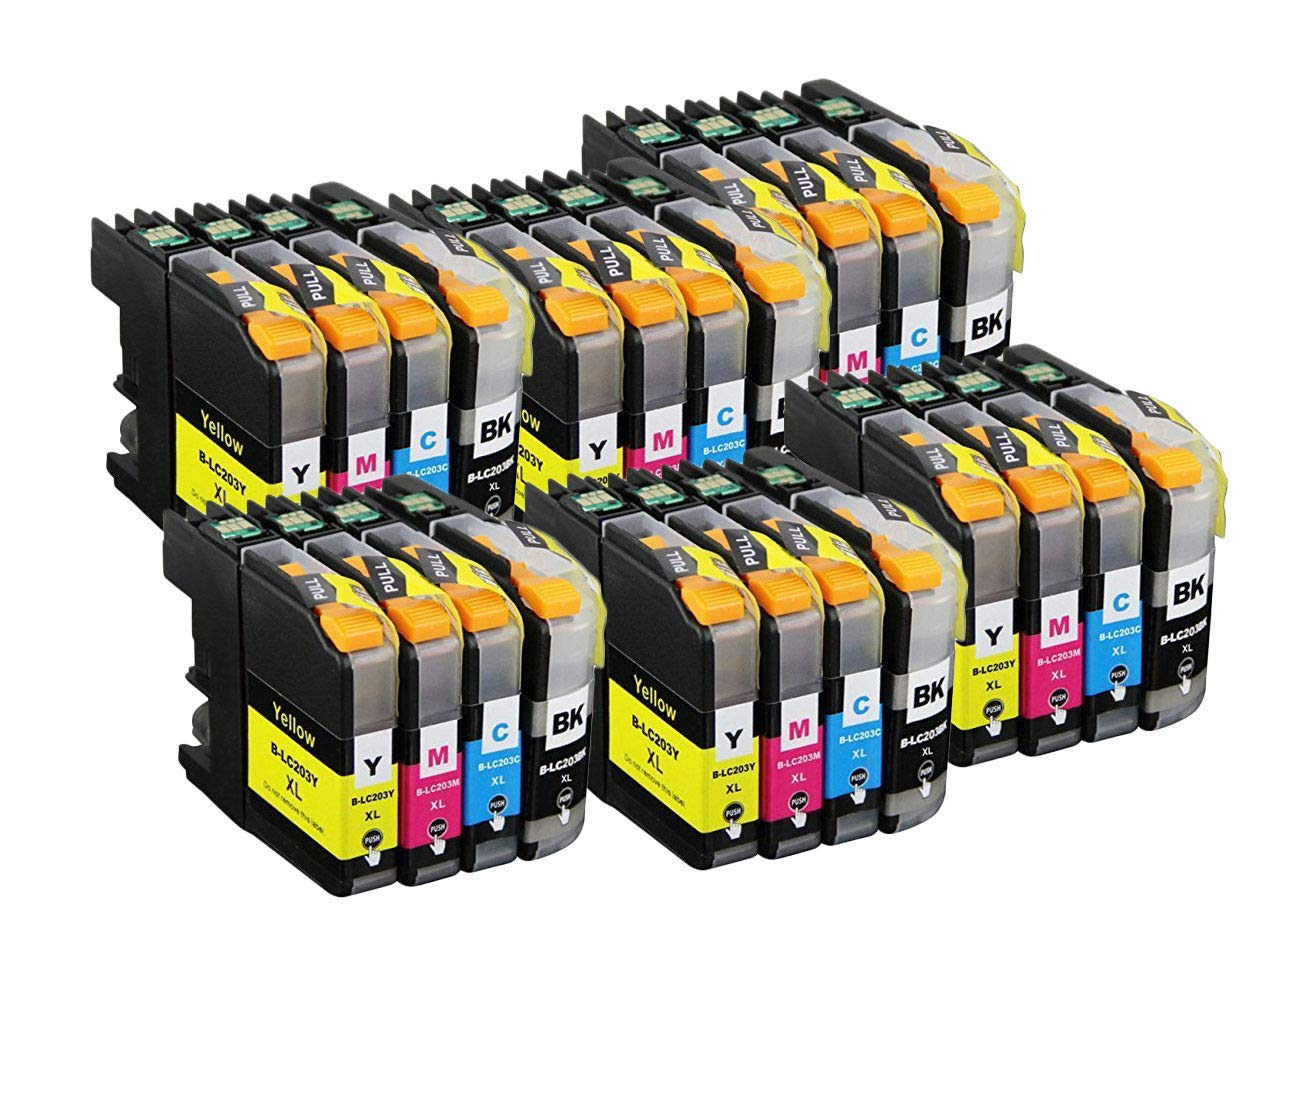 Zulu Inks 24 PK Compatible Brother LC203 For Use with Brother MFC-J4320DW MFC-J4420DW MFC-J460DW MFC-J4620DW MFC-J480DW MFC-J485DW MFC-J5520DW MFC-J5620DW MFC-J5720DW MFC-J680DW MFC-J880DW MFC-J885DW